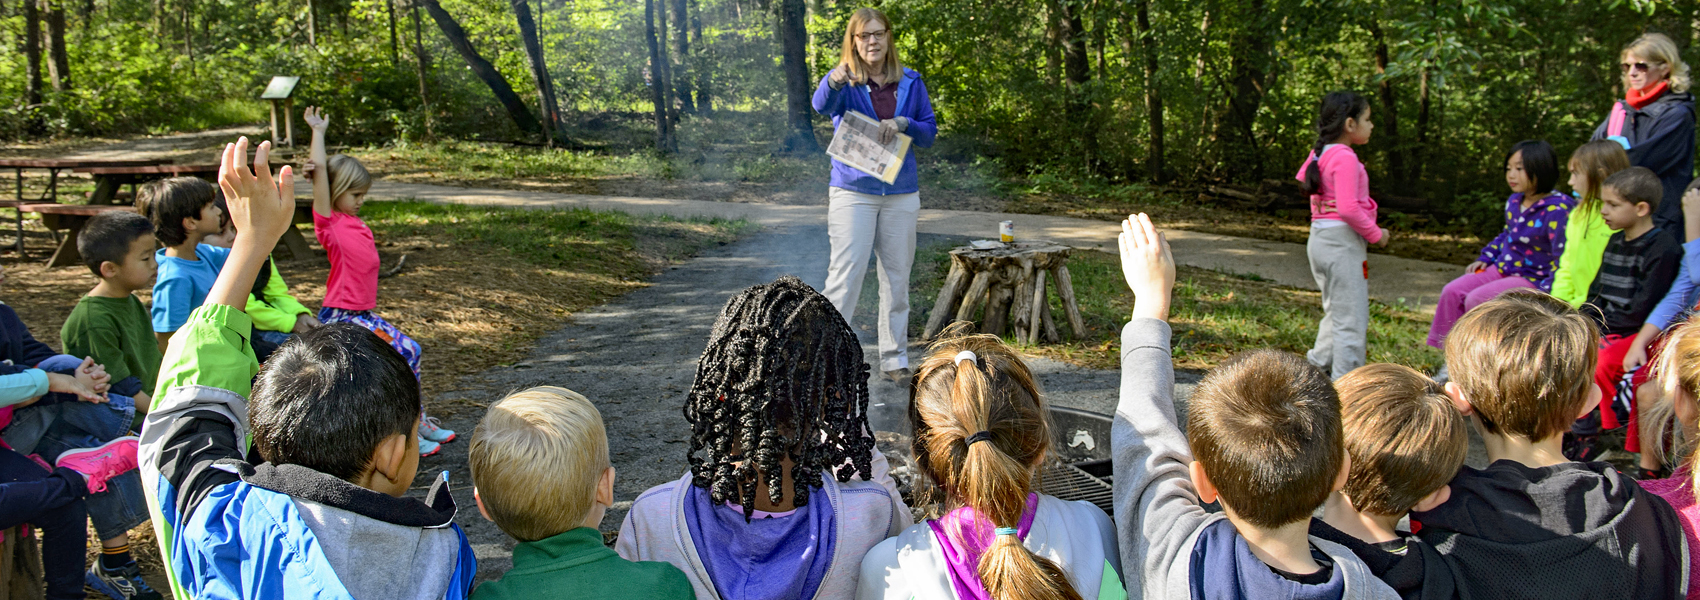 A naturalist talks to a group of students visiting the park